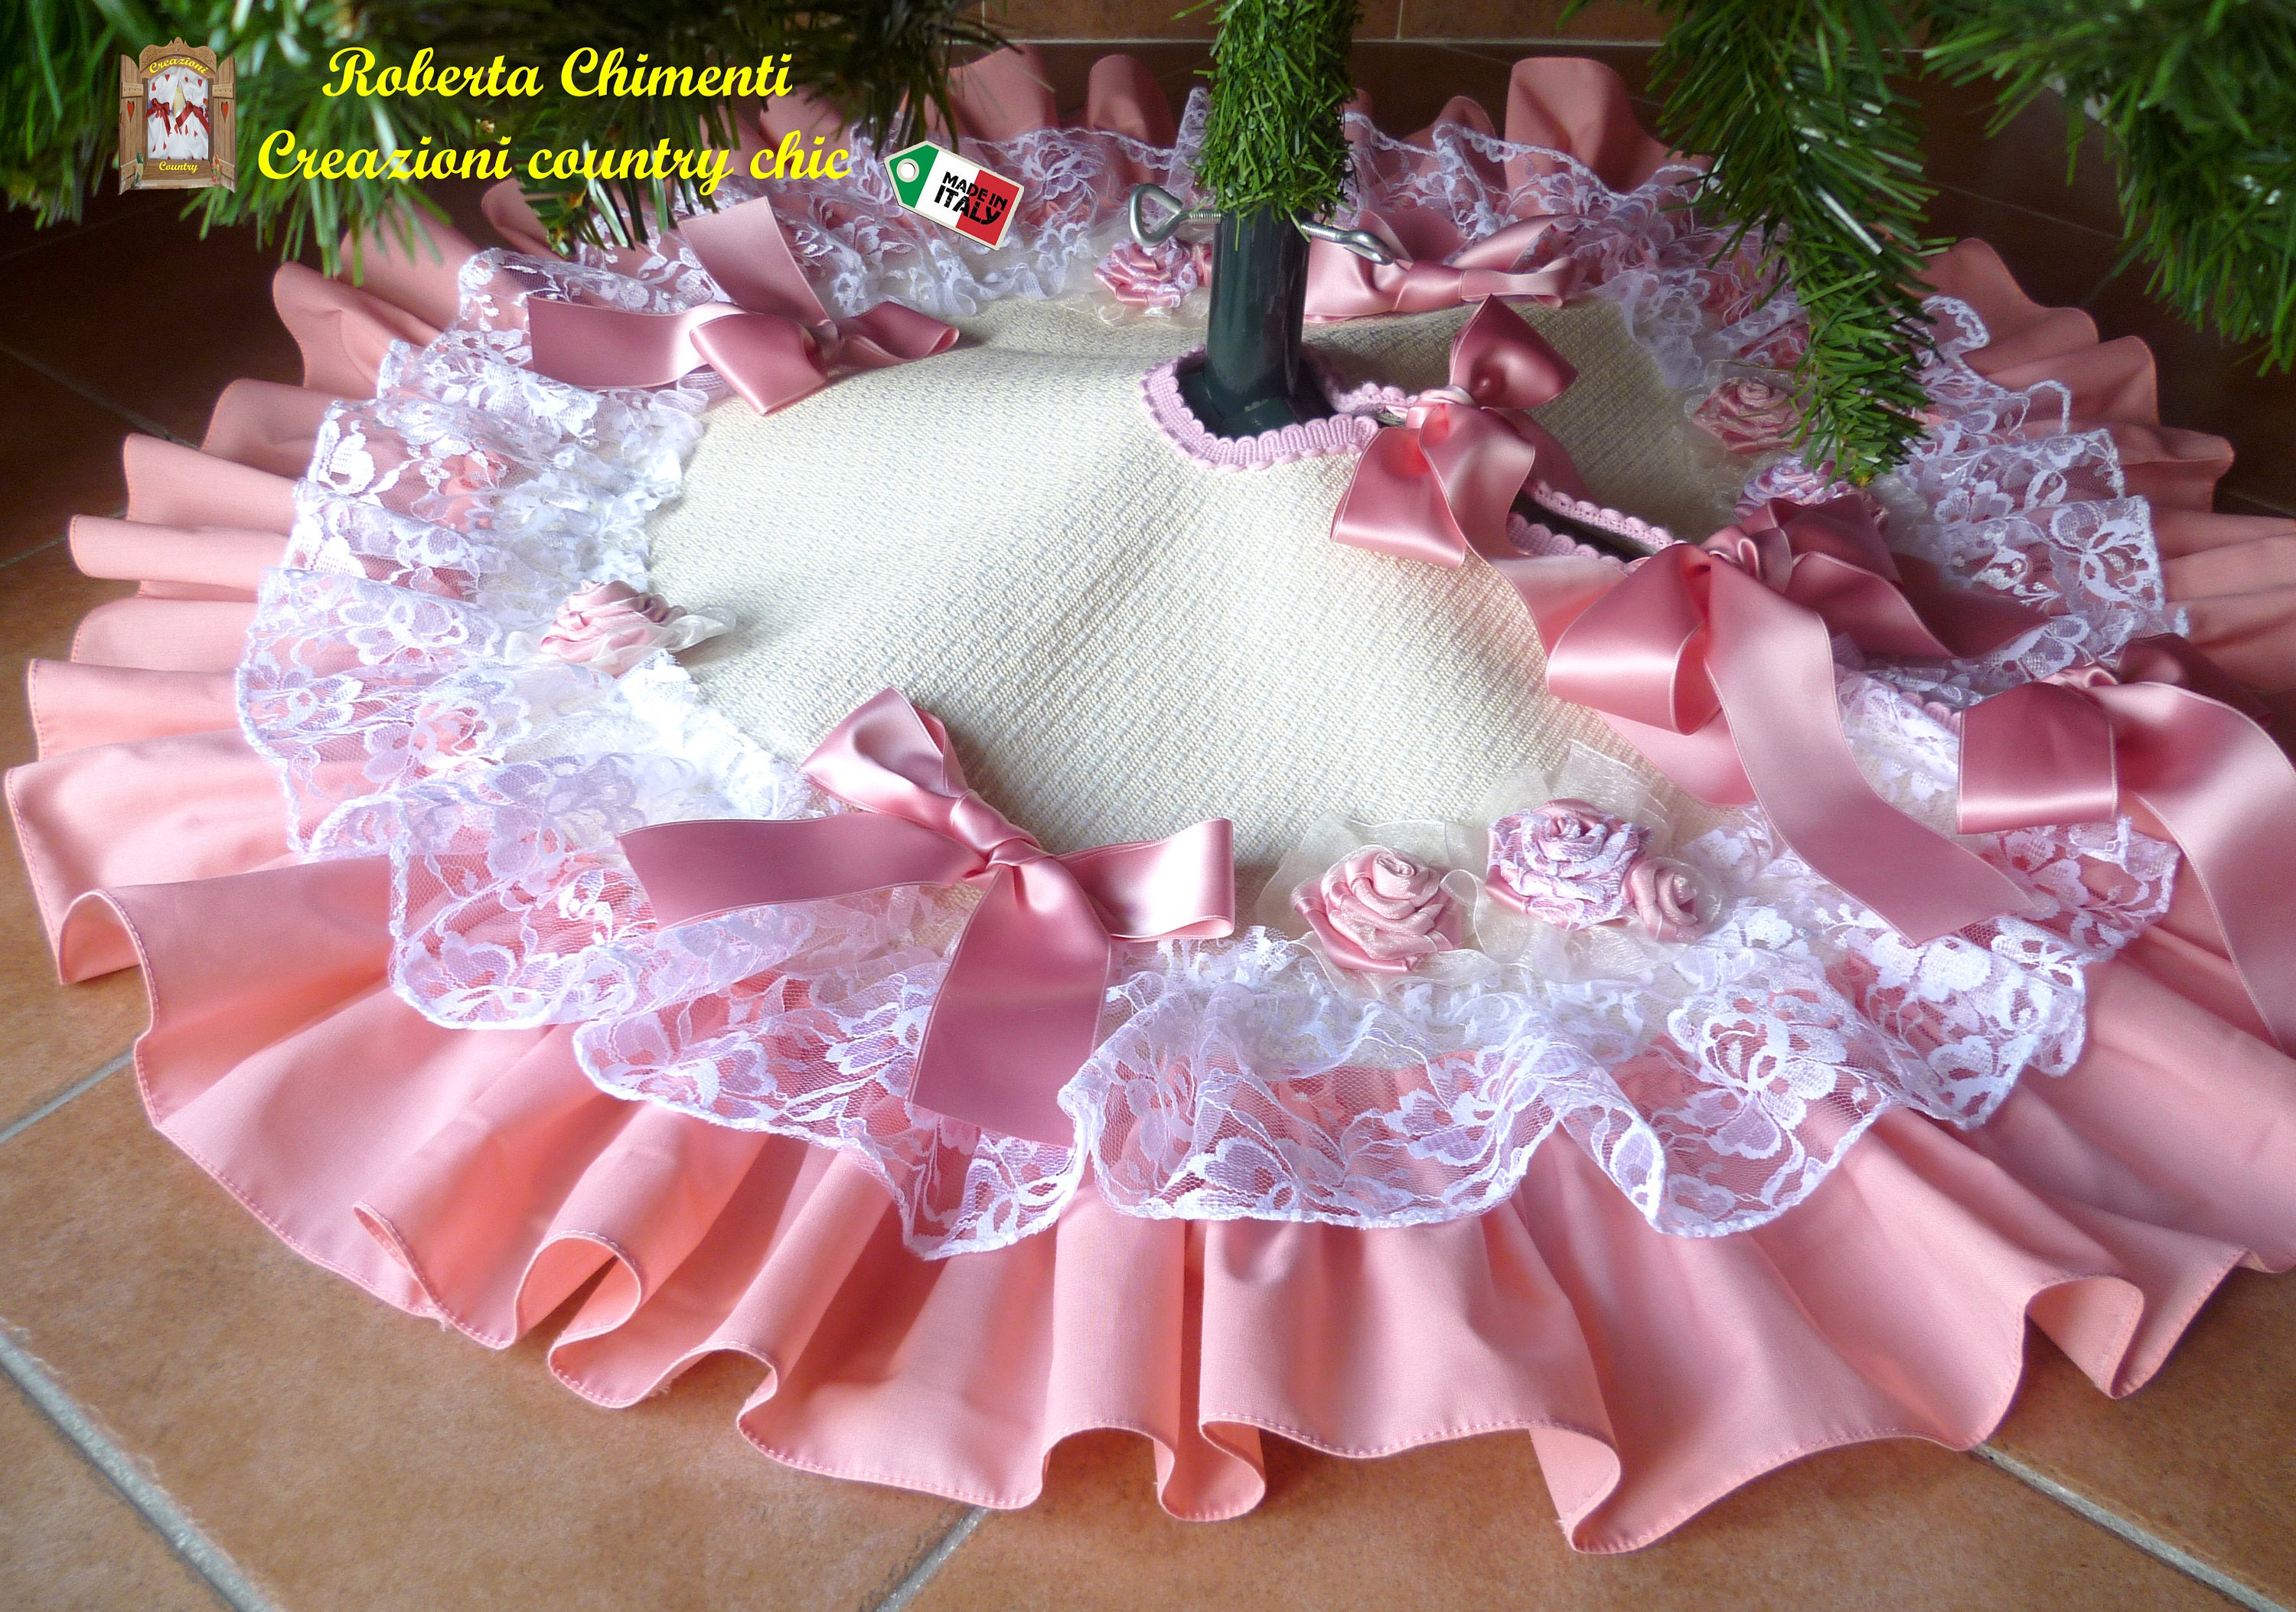 Pink Shabby Chic Tree Skirt With Combine Tree Topper Christmas Tree Skirt With White Lace Tree Skirt With Frills Pink Christmas Tree Base